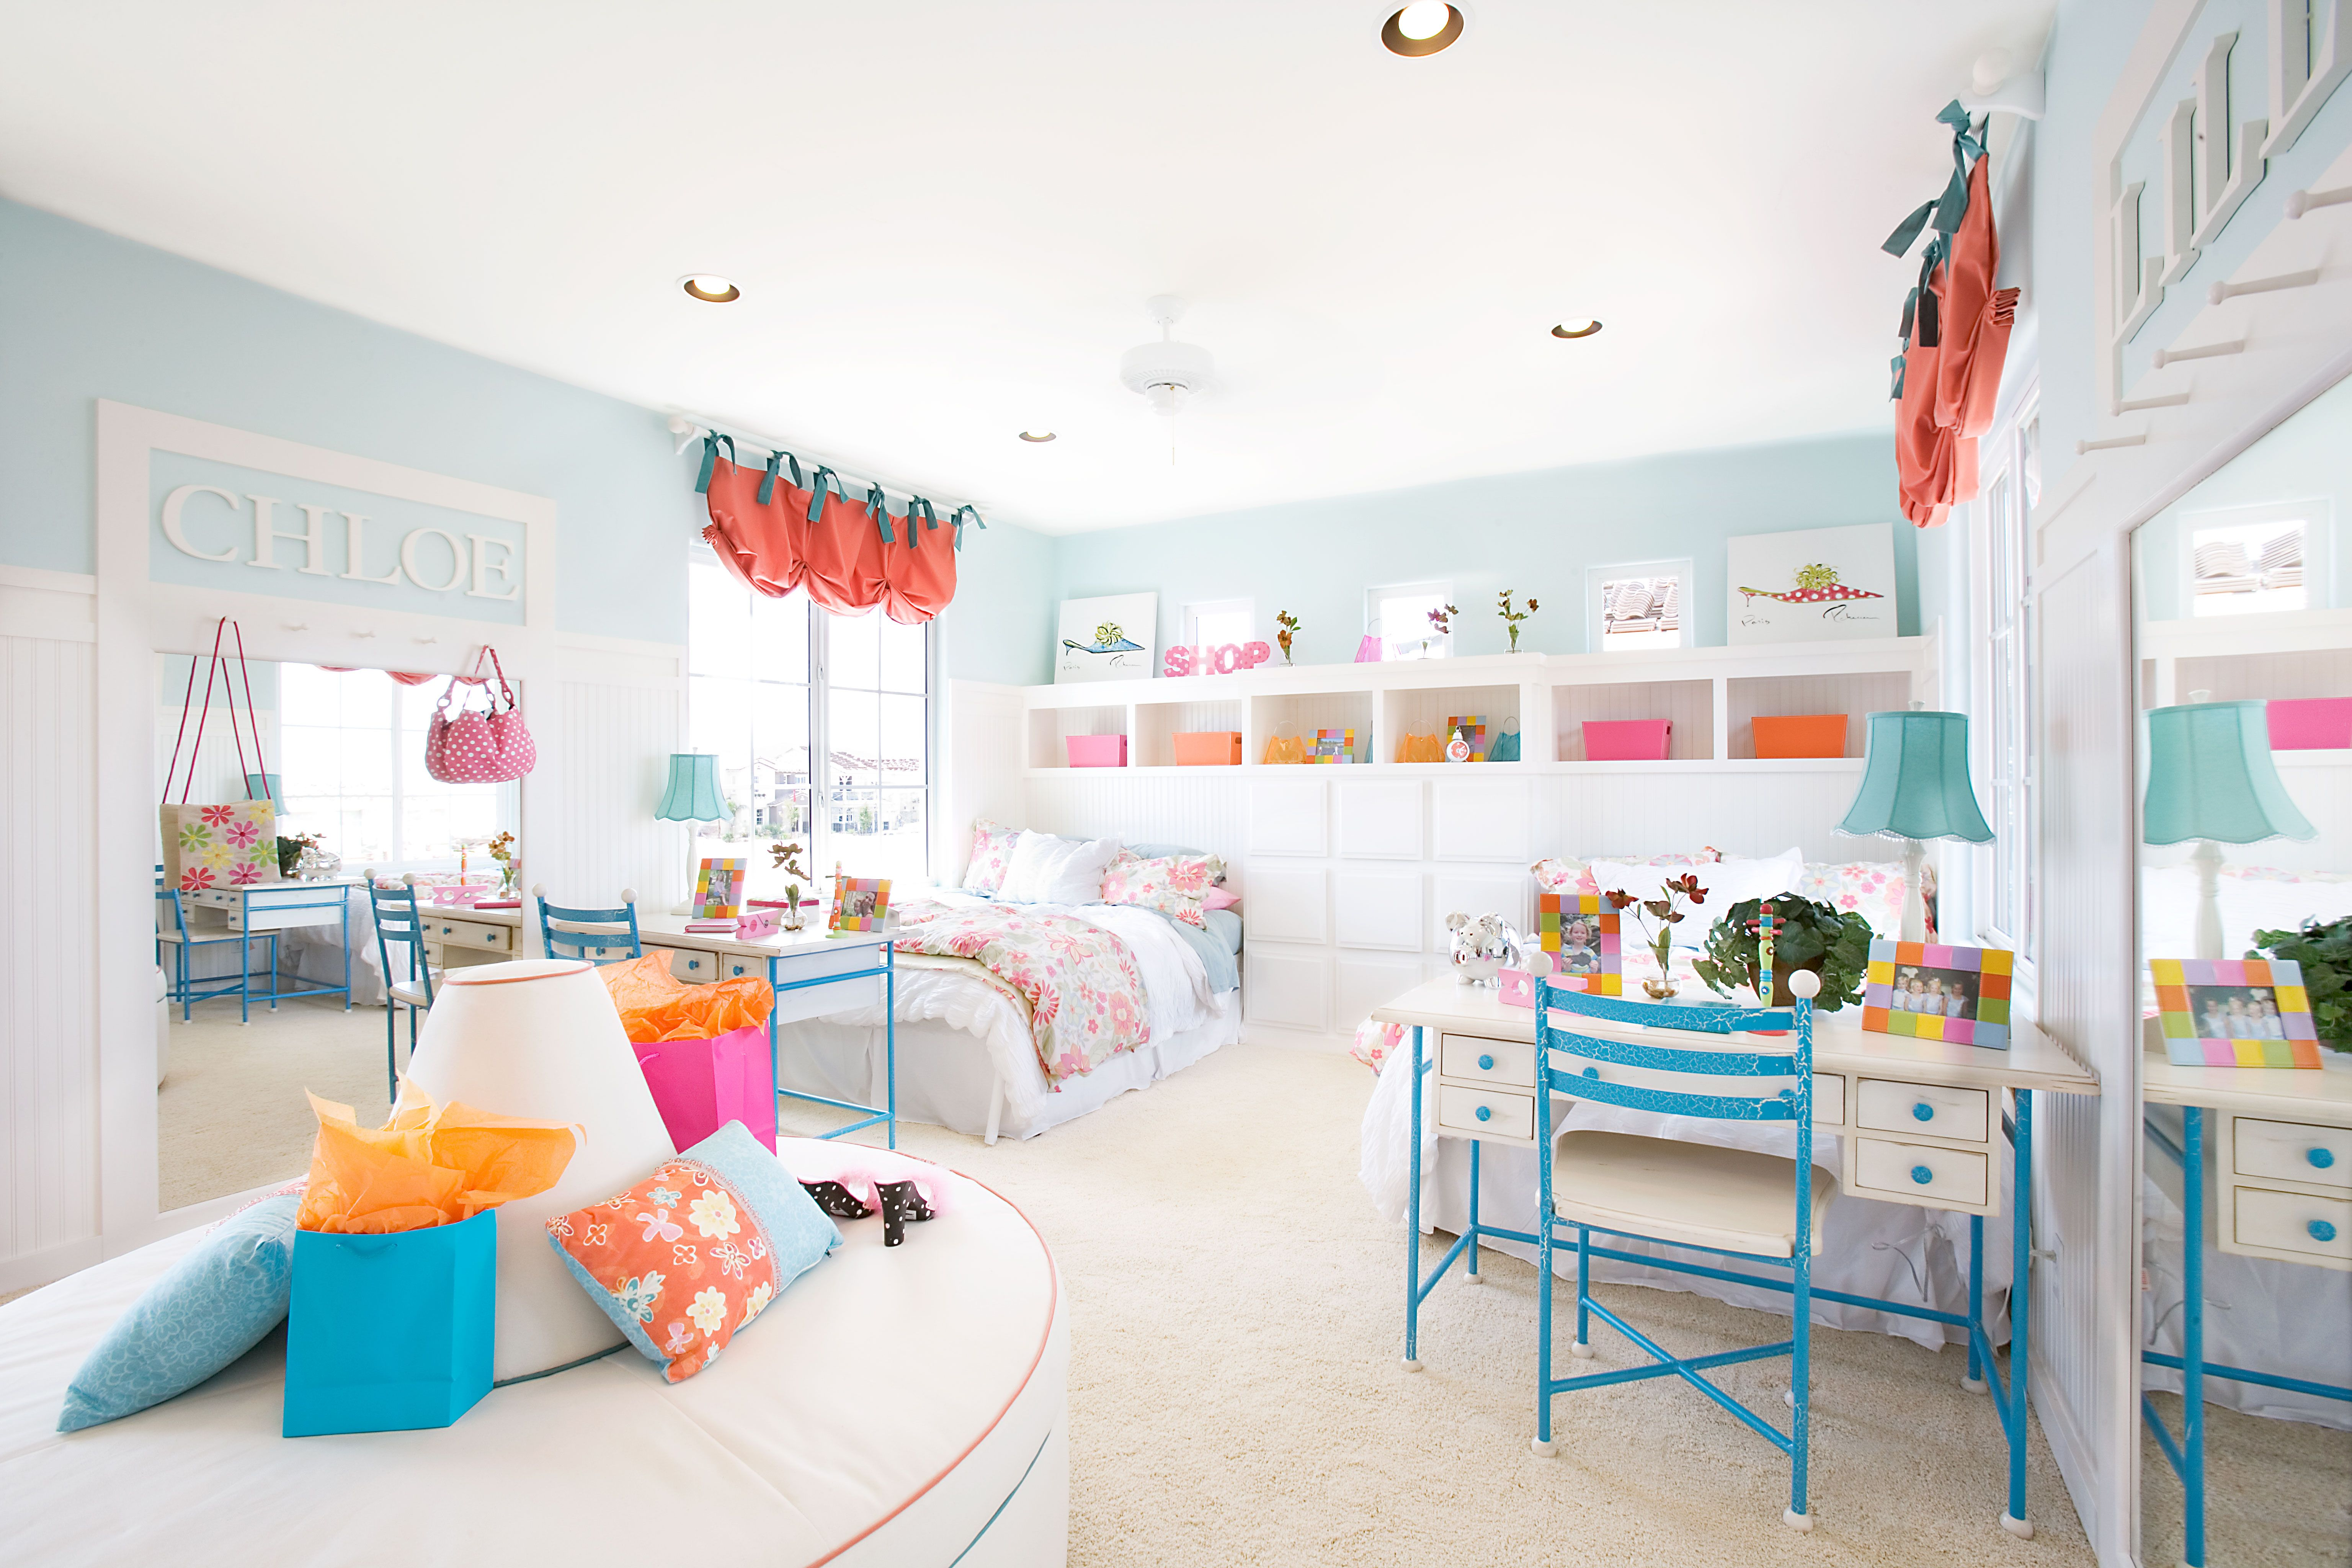 Large Colorful Pastel Color Kid Bedroom Design With White Base Interior Also Retro Furniture For